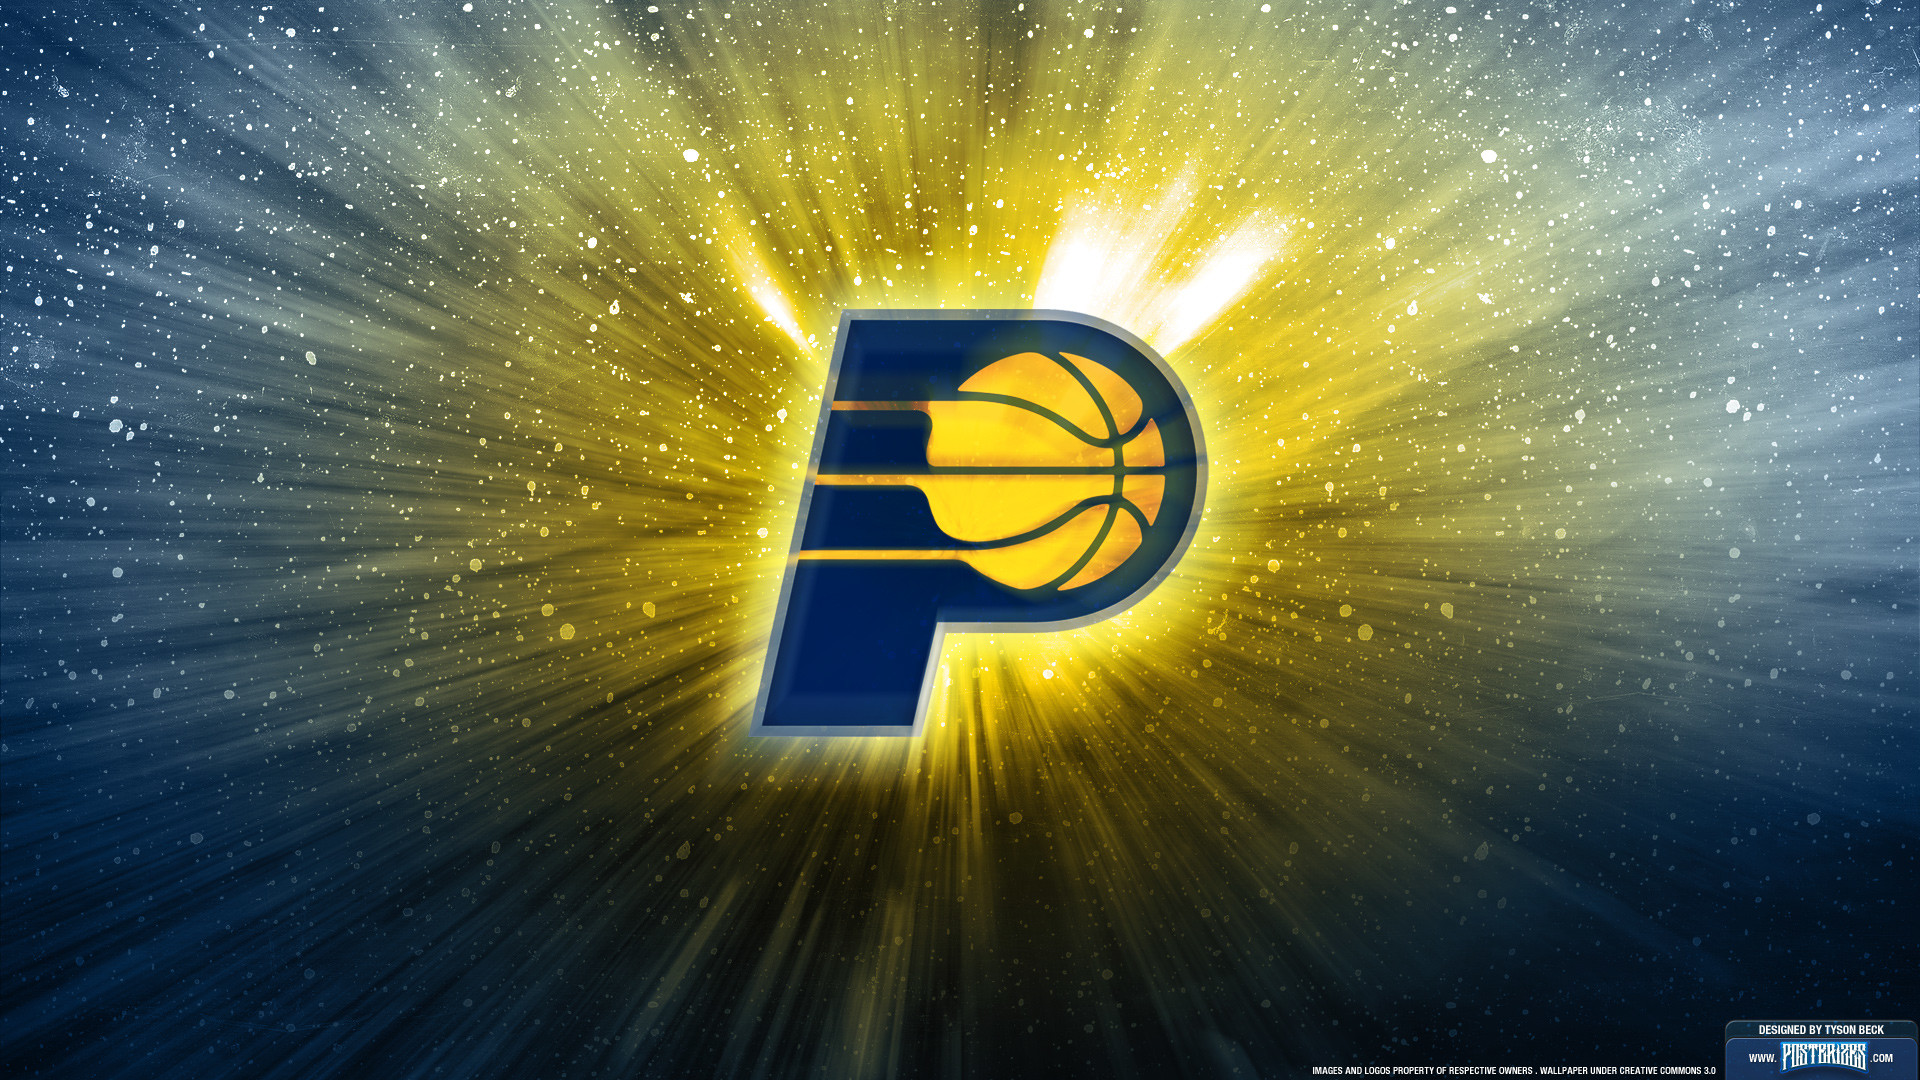 1920x1080 INDIANA PACERS nba basketball (7) wallpaper |  | 227031 |  WallpaperUP